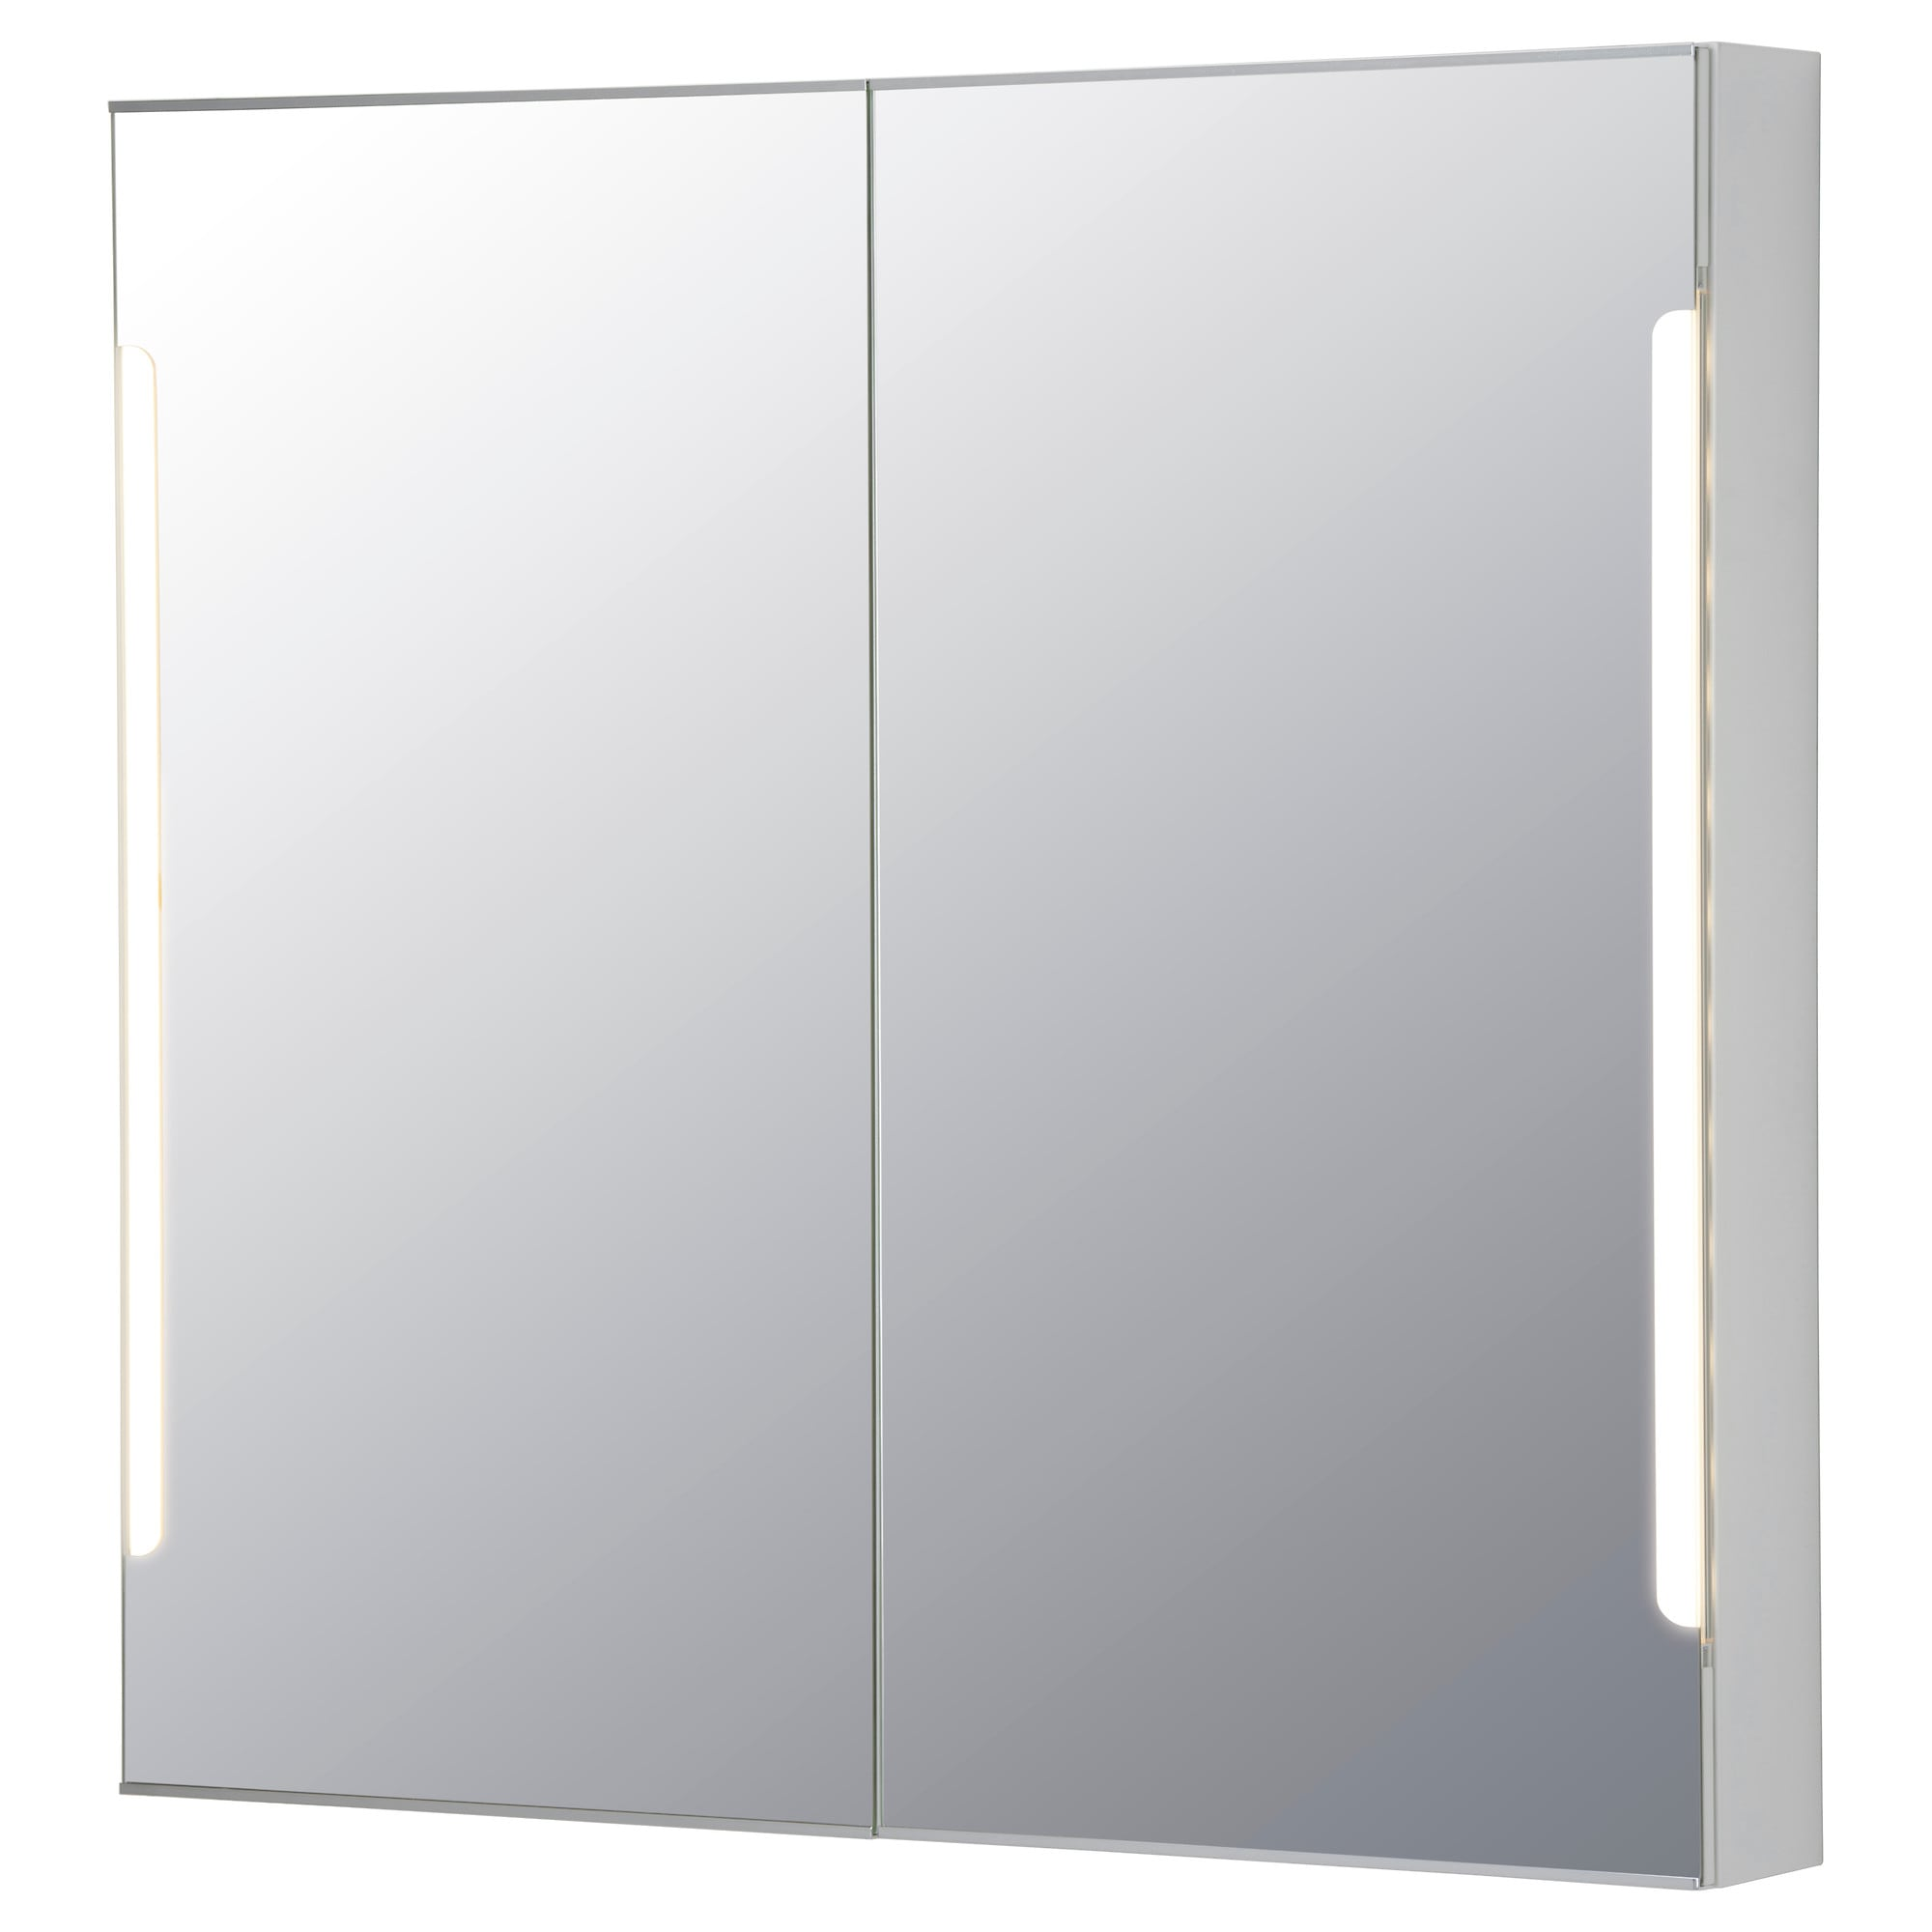 Bathroom Cabinet Mirrored Storjorm Mirror Cabinet W2 Doors & Light  Ikea